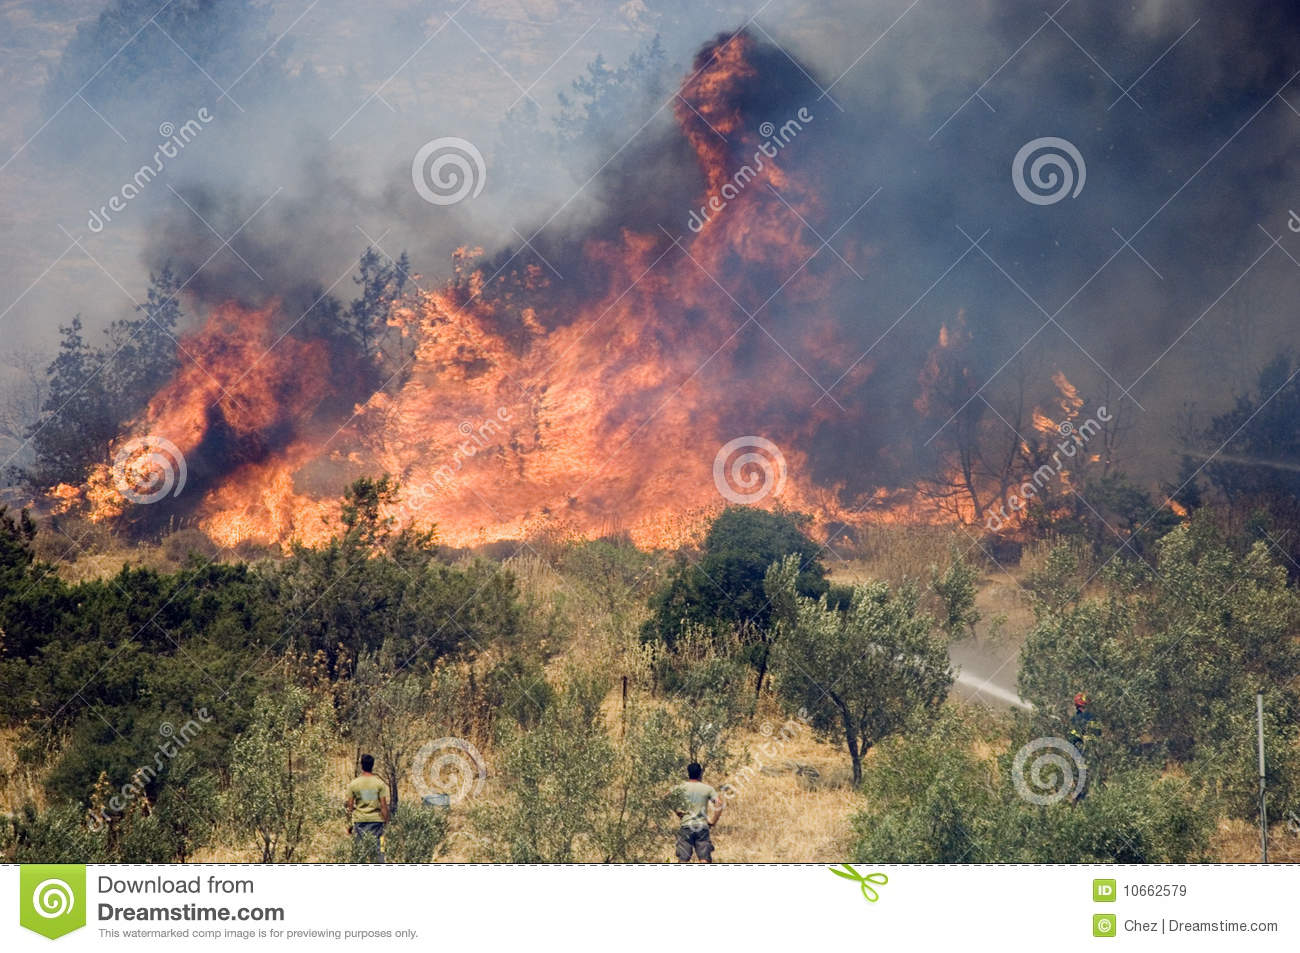 Athens forest fires